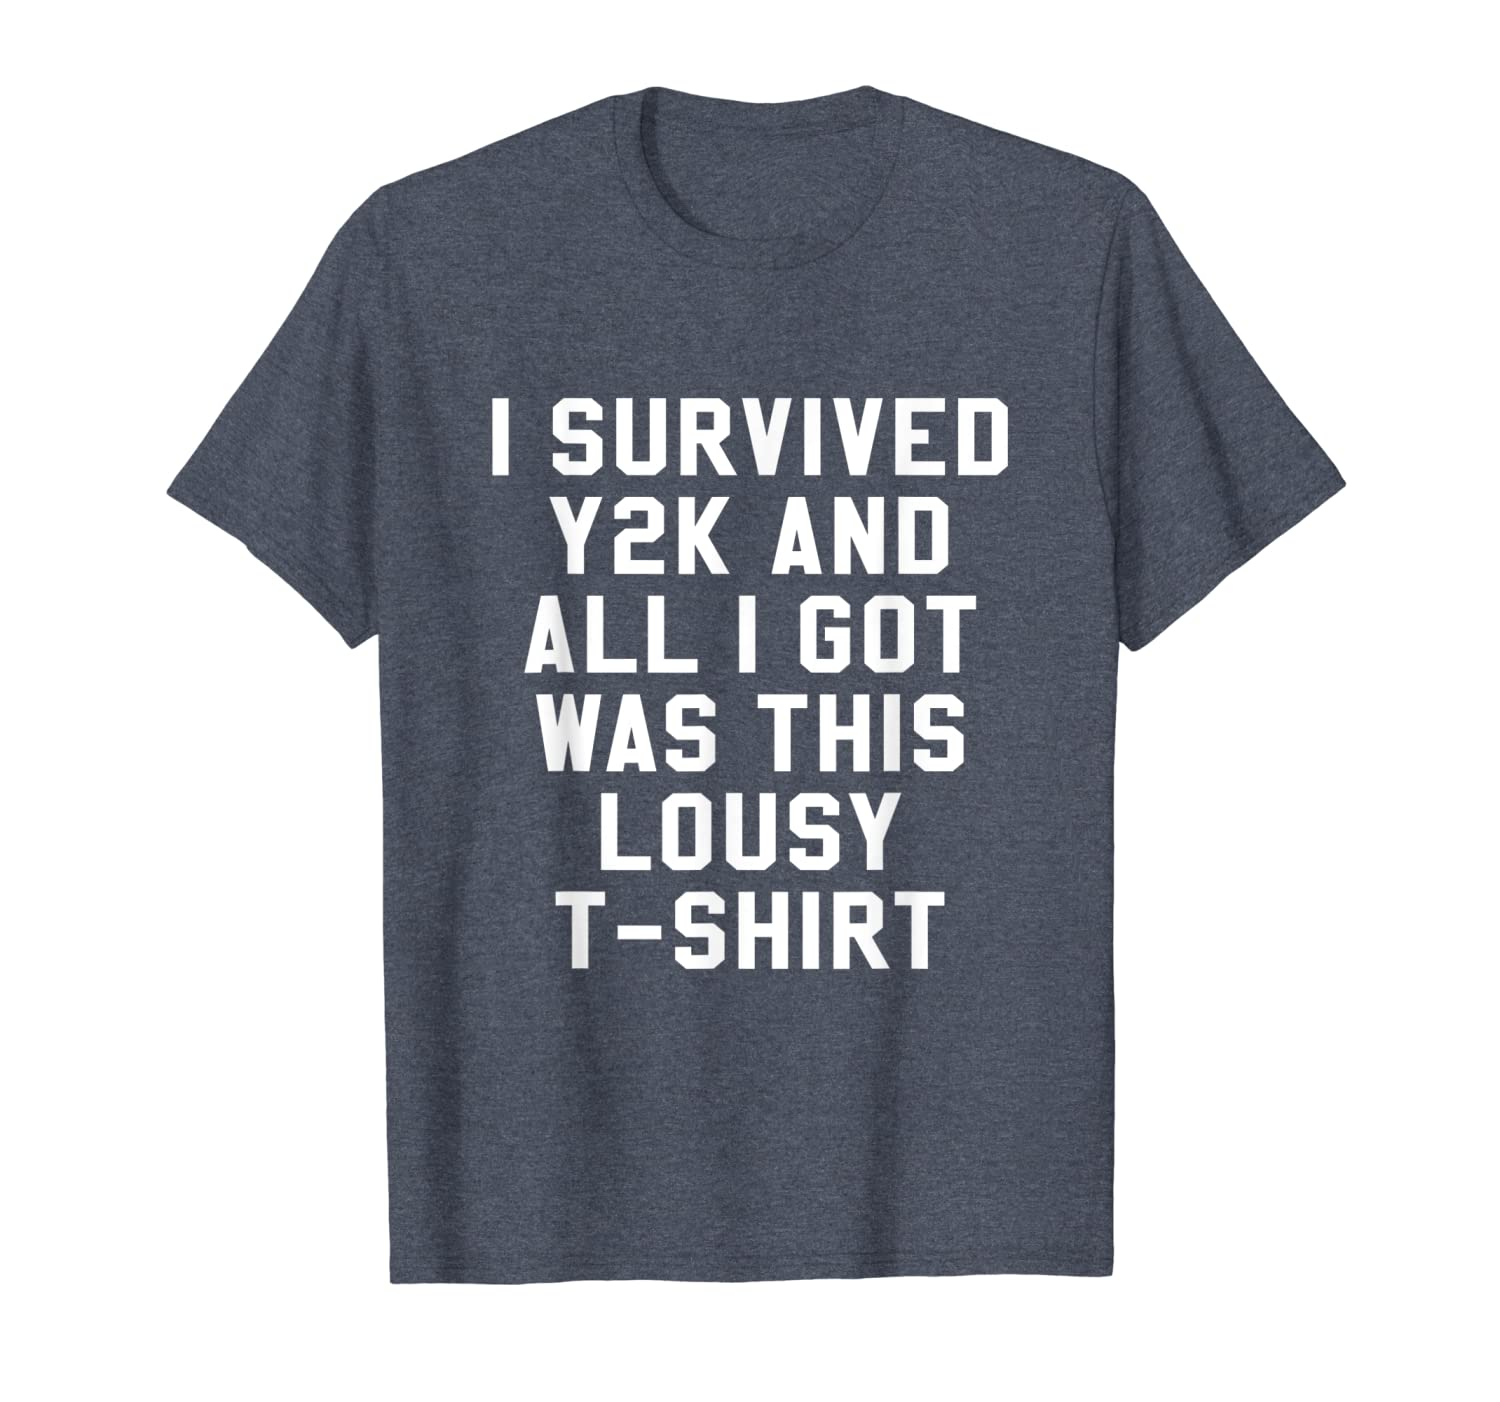 6b5896b09 Amazon.com: I Survived Y2K And All I Got Was This Lousy T-Shirt 90s:  Clothing